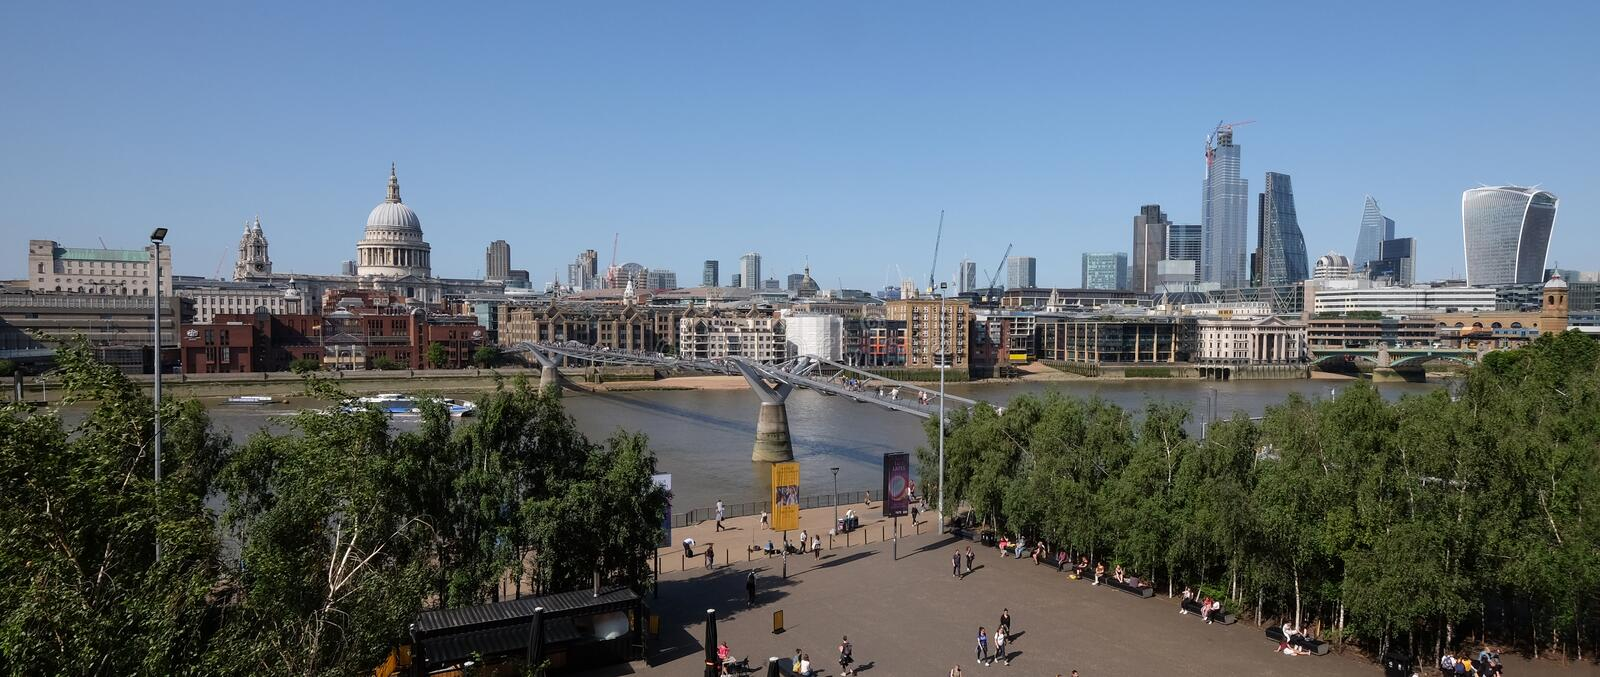 City of London, United Kingdom 6th July 2019: London skyline panorama seen from south bank. St Pauls Cathedral and river Thames in foreground on summer day royalty free stock photo